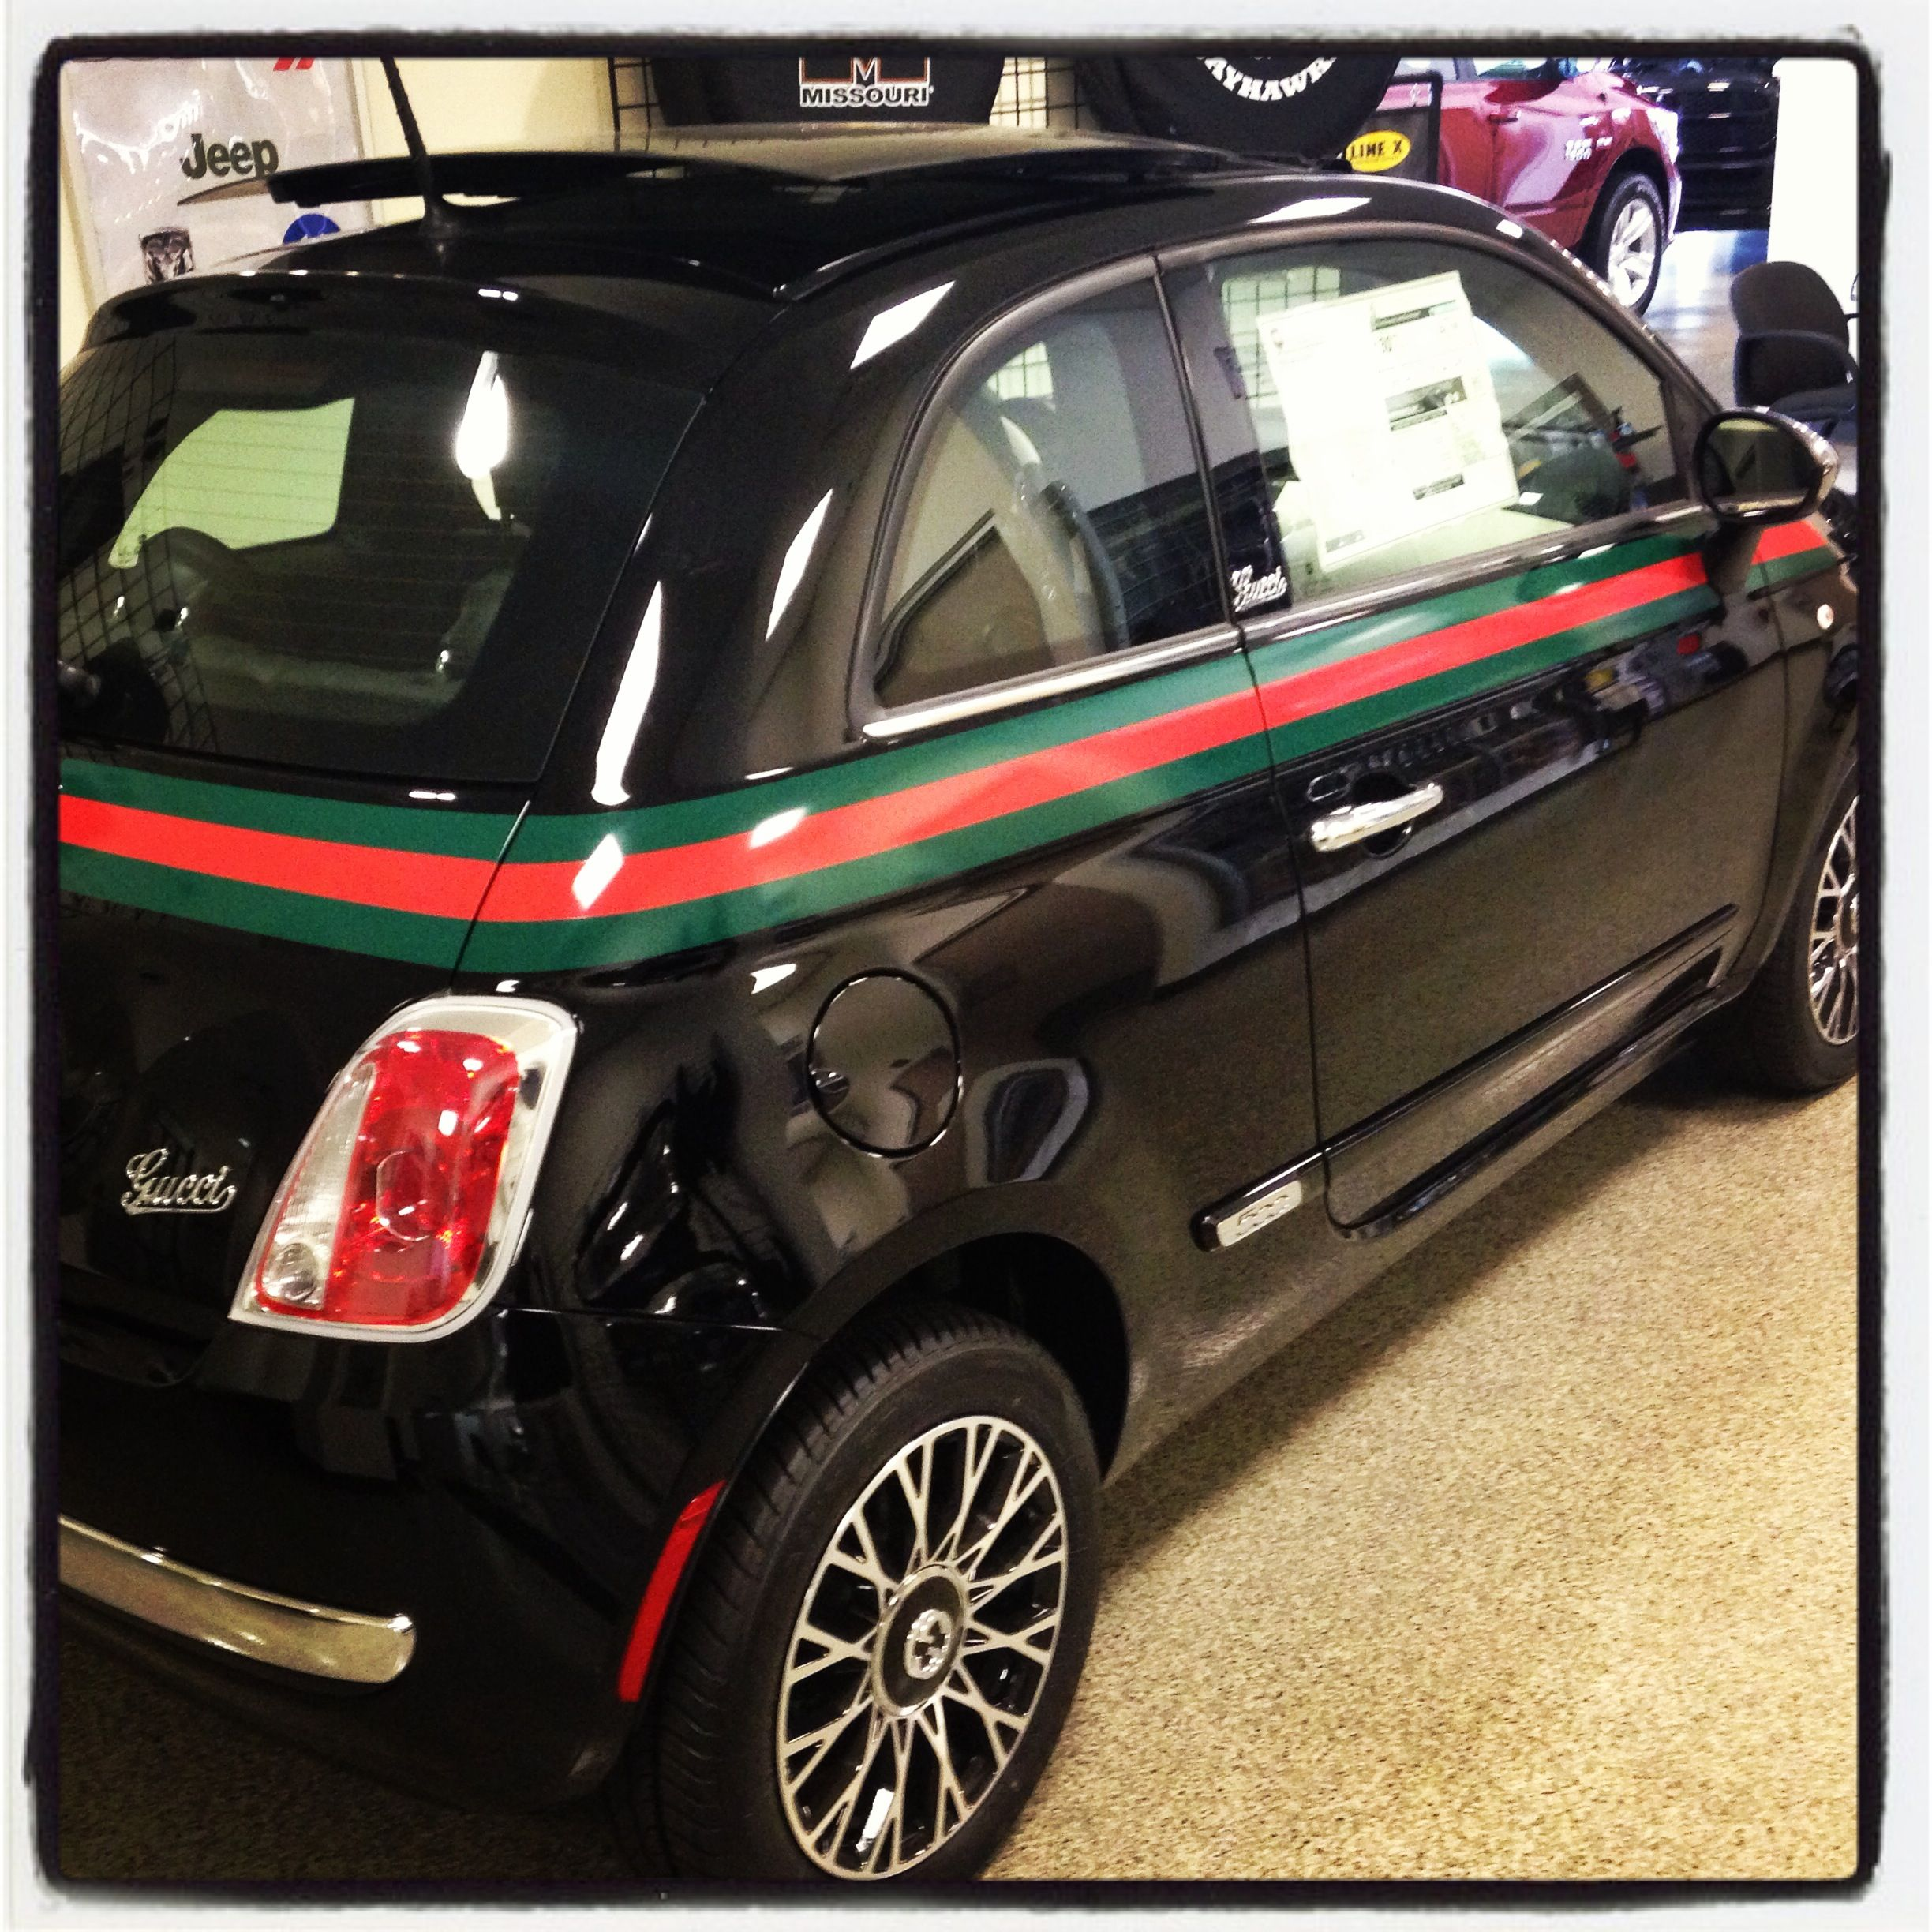 2013 fiat 500 gucci package olathe dodge chrysler jeep ram fiat fiat fiat 500 fiat 500 gucci. Black Bedroom Furniture Sets. Home Design Ideas